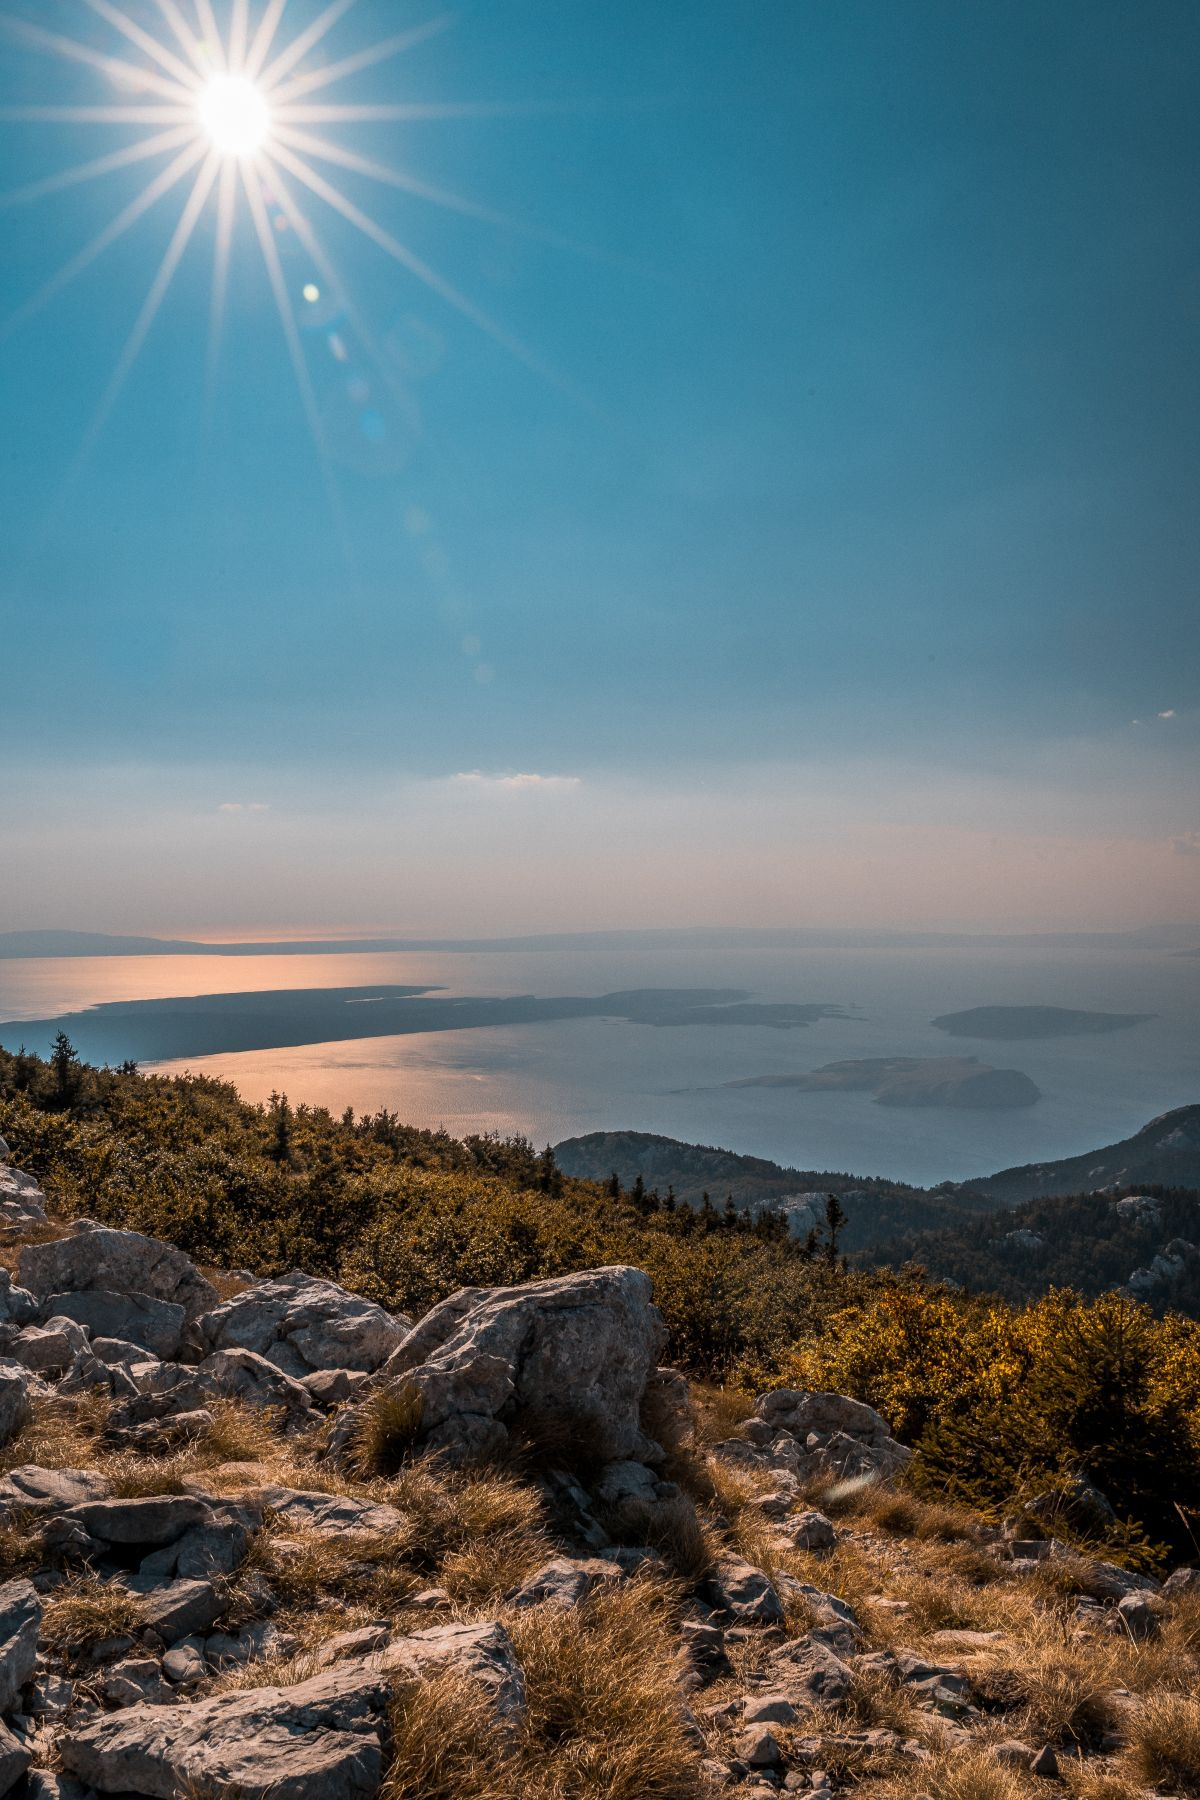 5 easy reachable national parks in Croatia